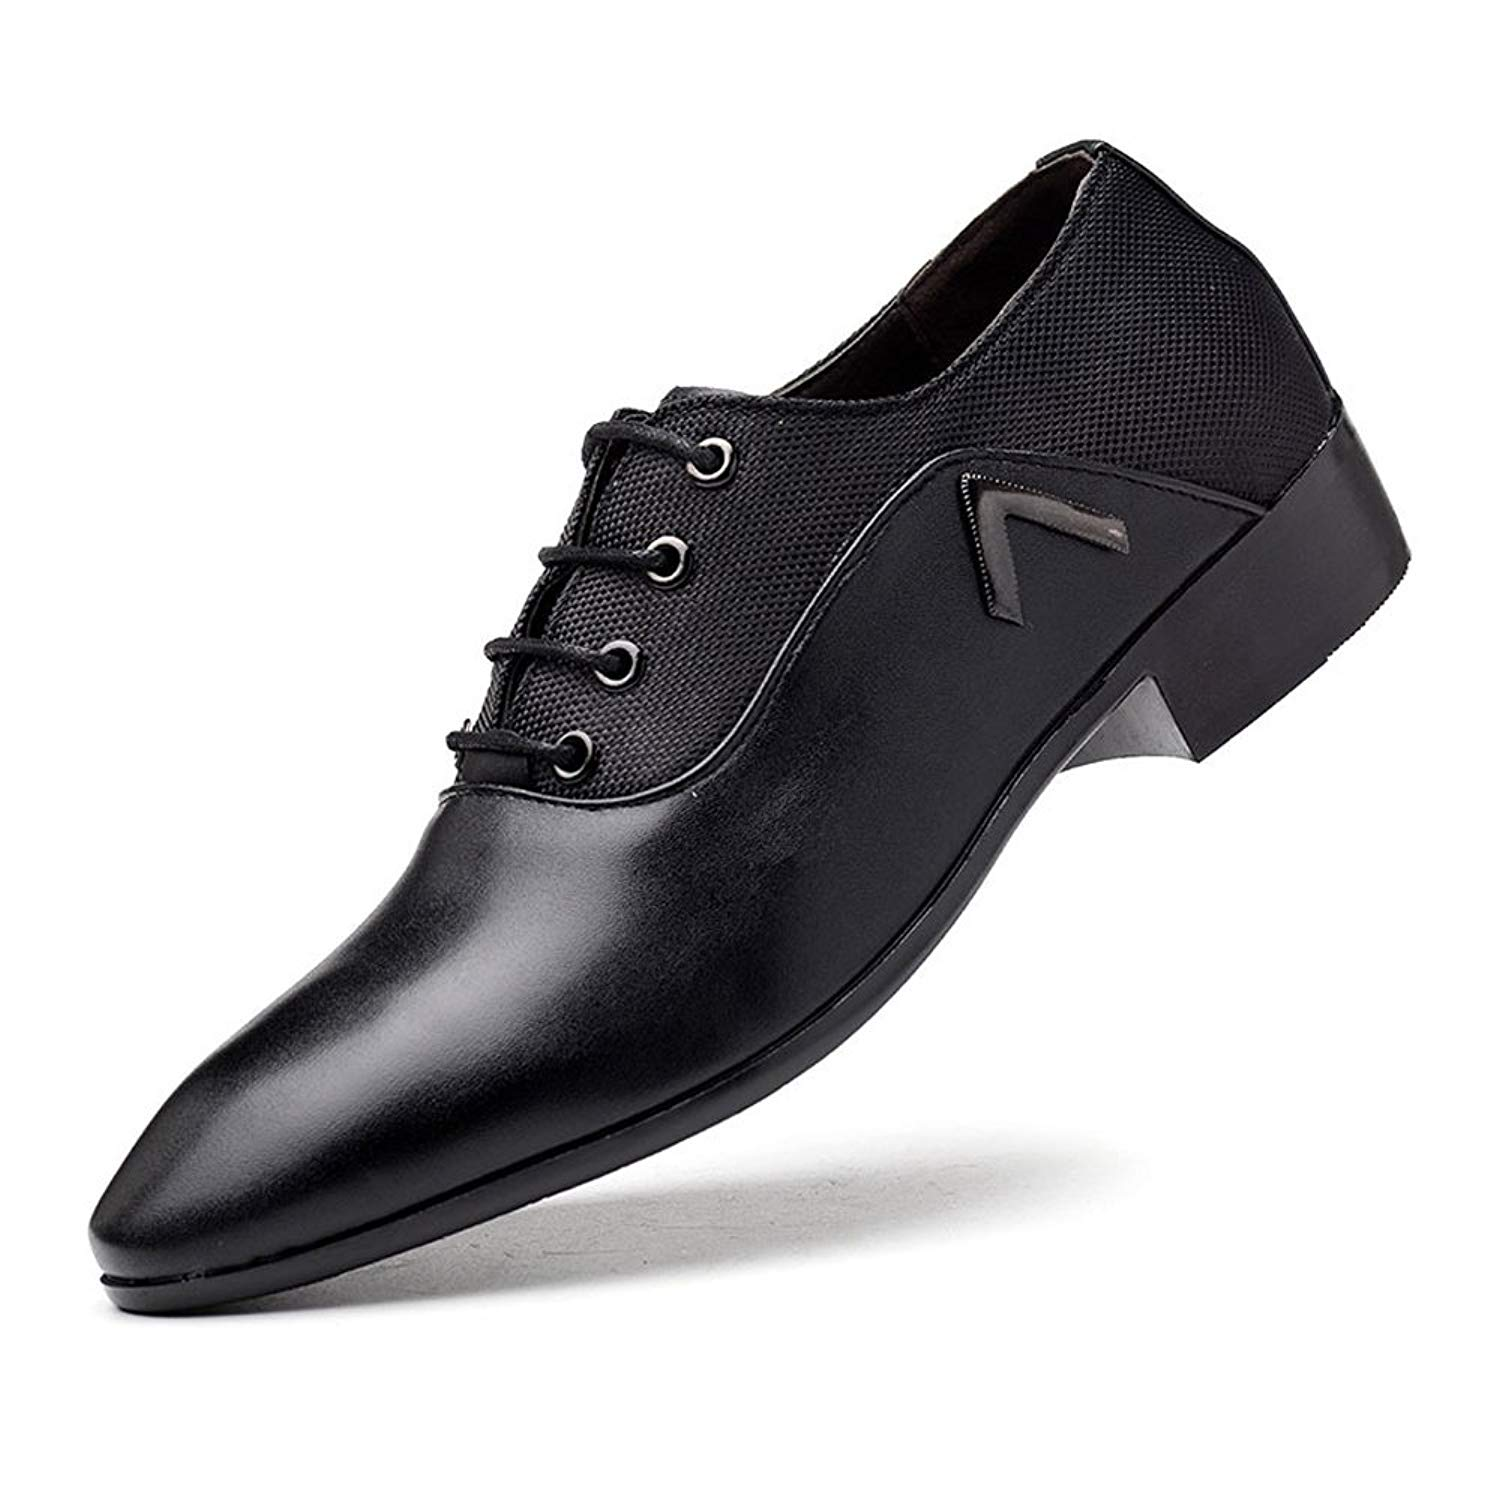 Muyin Men's Lace up Shoes Black Heel Business Oxfords with PU Leather Splice Breathable Canvas Vamp